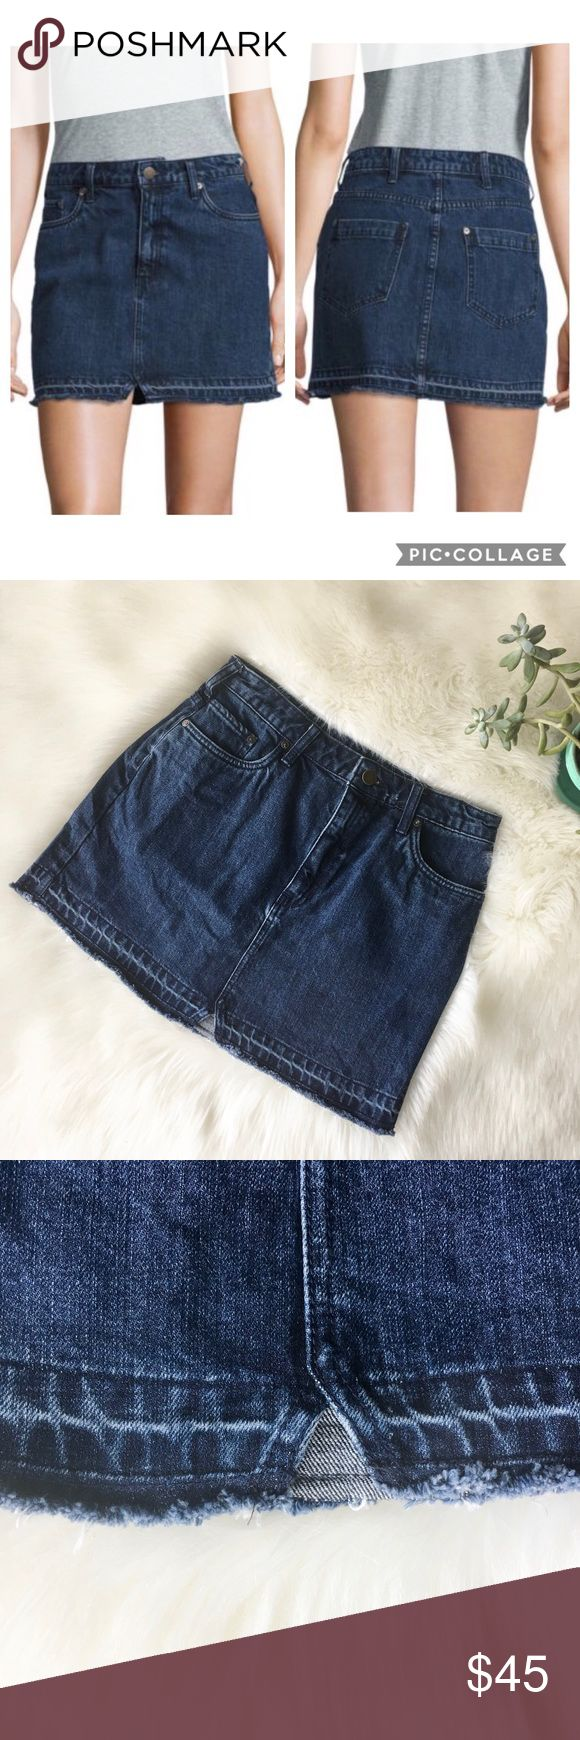 "Free People Step Up Frayed Denim Mini Skirt Dark wash denim mini skirt with zip and button closure, 5 pockets, and frayed hem. Flat waist measurement 14.5"" and 15.25"" long. EUC besides a tiny distressed spot on the waistband next to the button as shown in pic. Sold out online! Free People Skirts Mini"